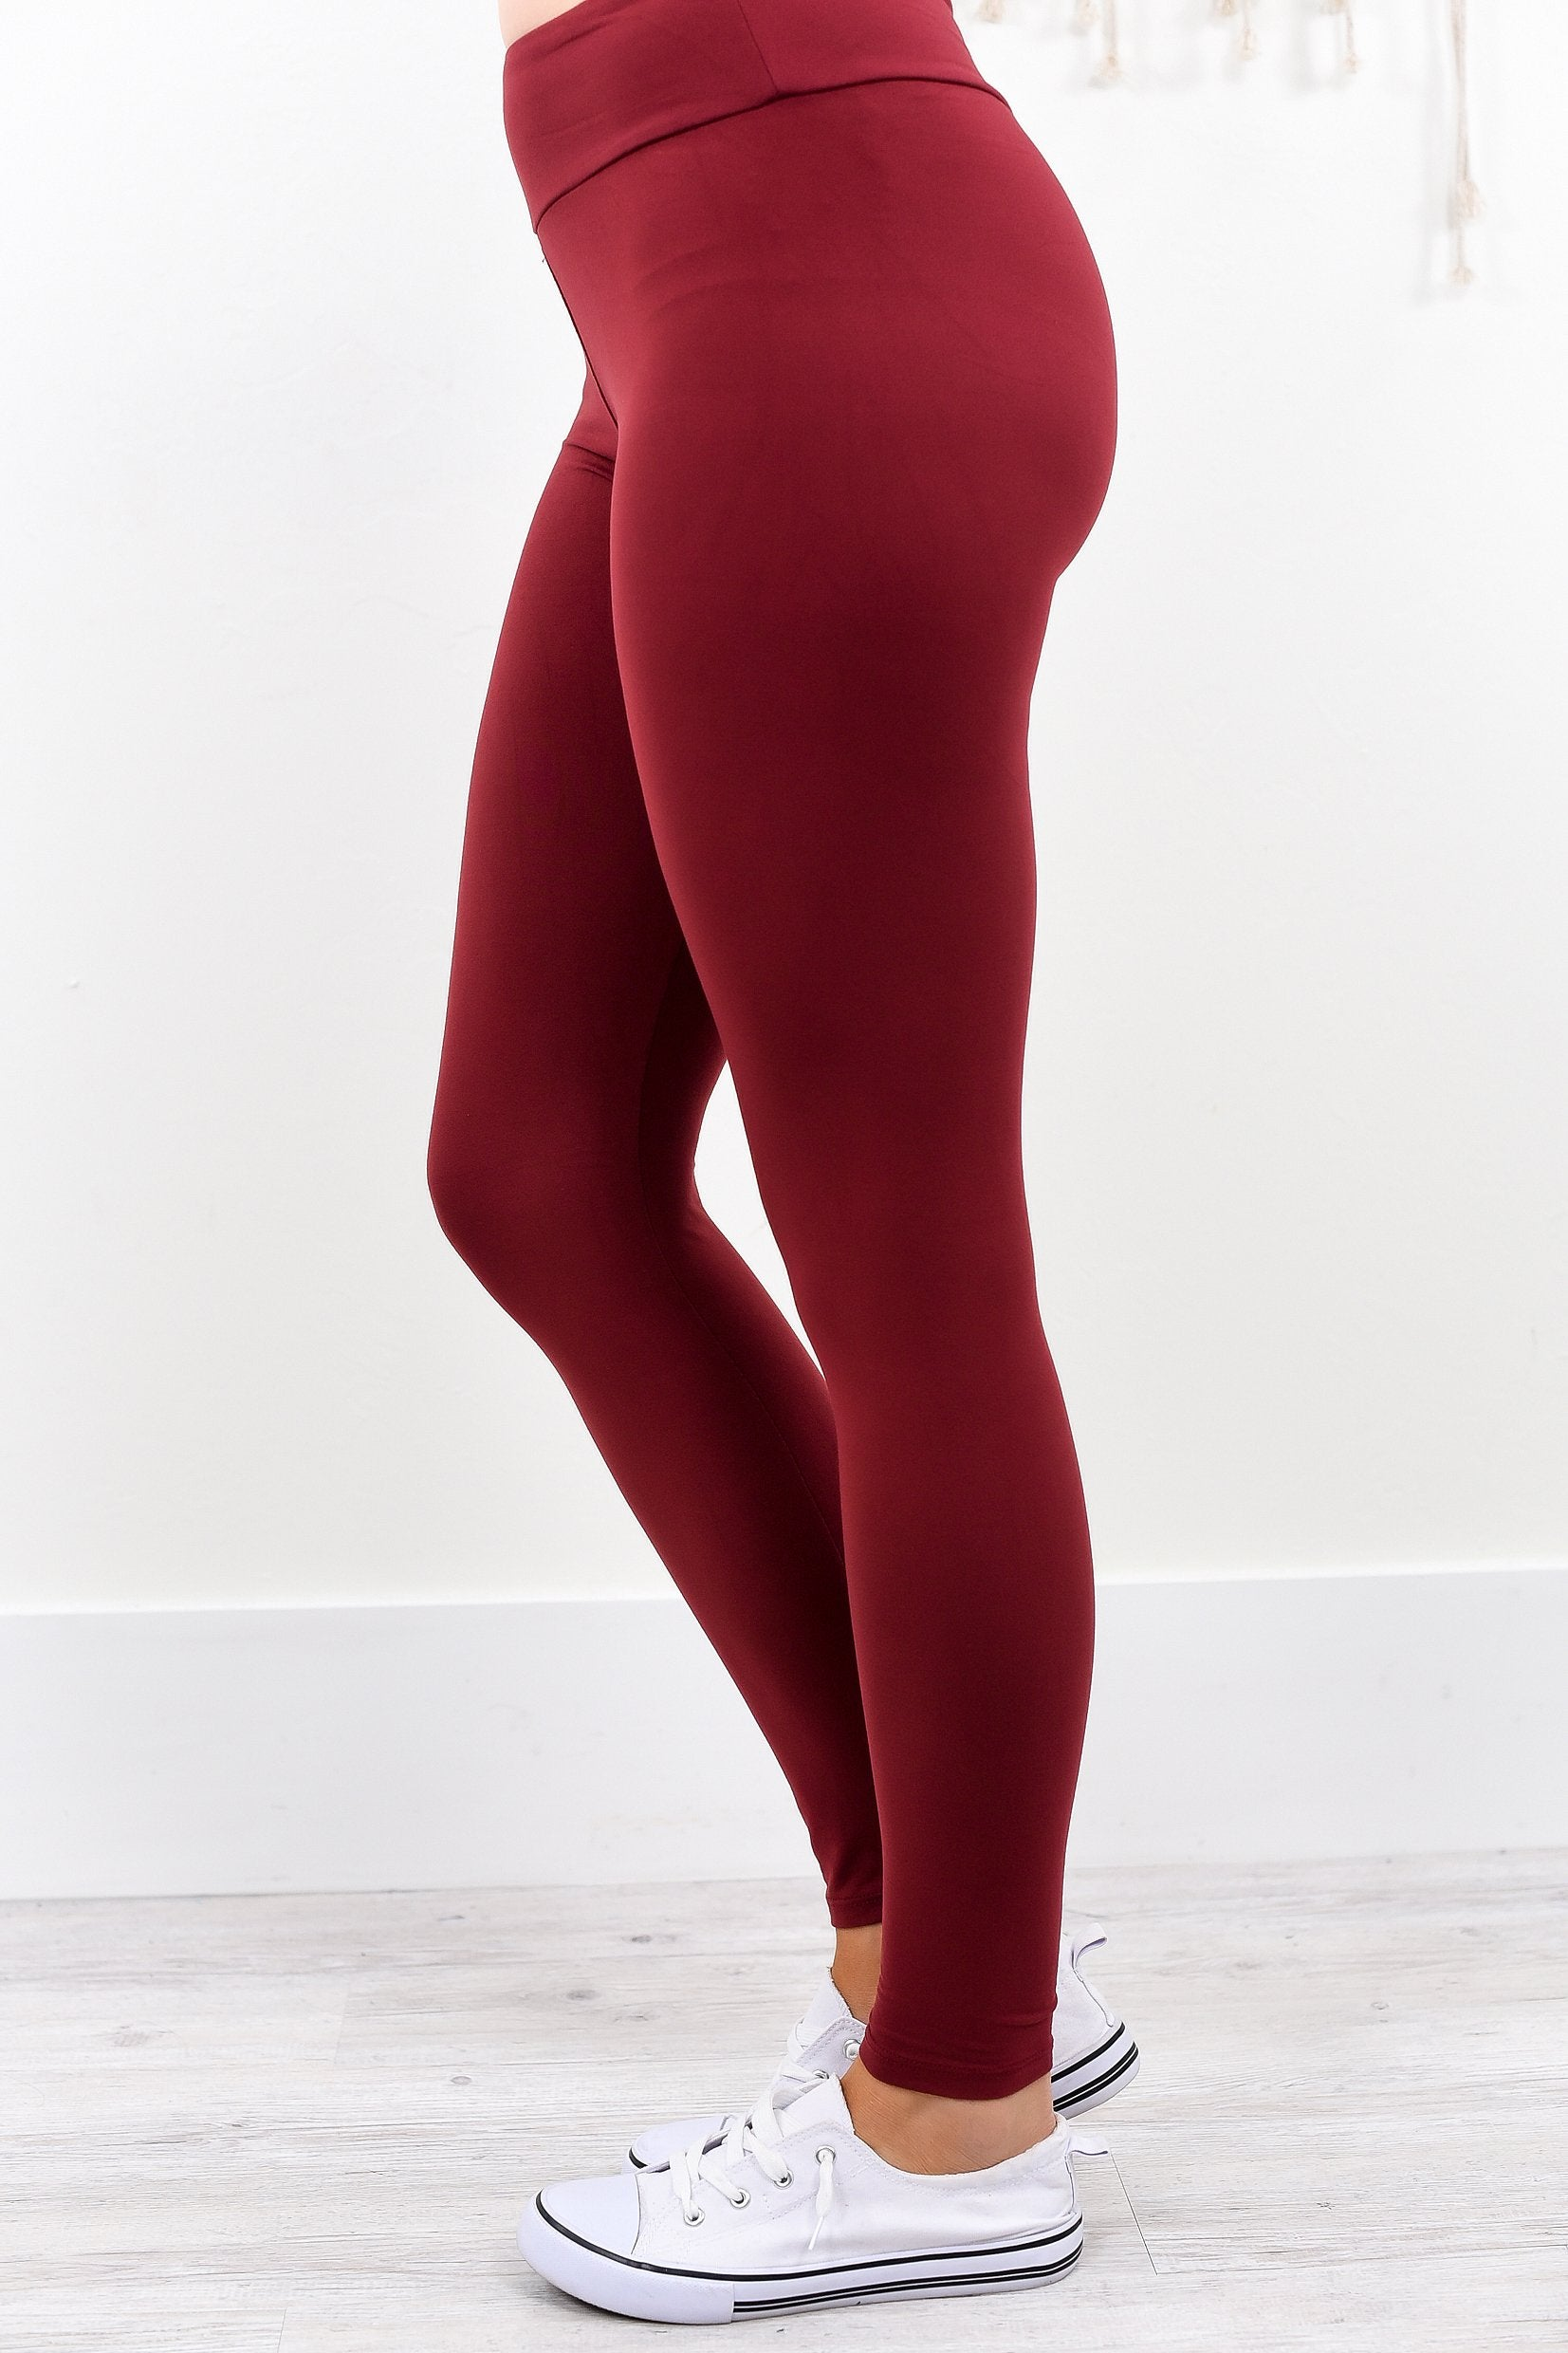 Burgundy Wide Band Solid Leggings (Sizes 4-12) - LEG1940BU